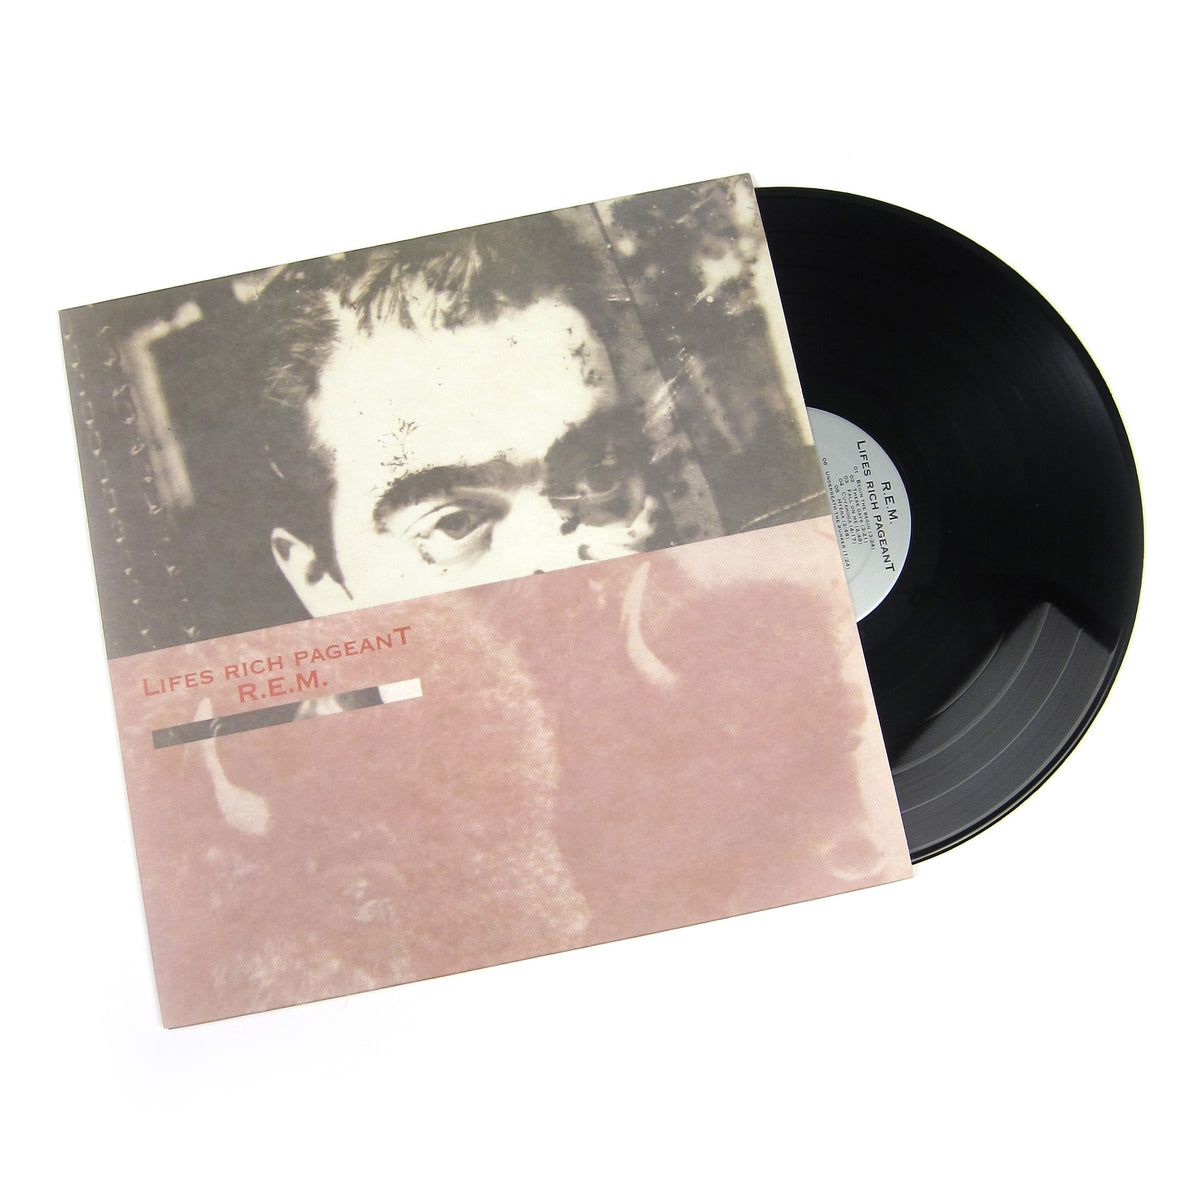 R.E.M.: Lifes Rich Pageant Vinyl LP